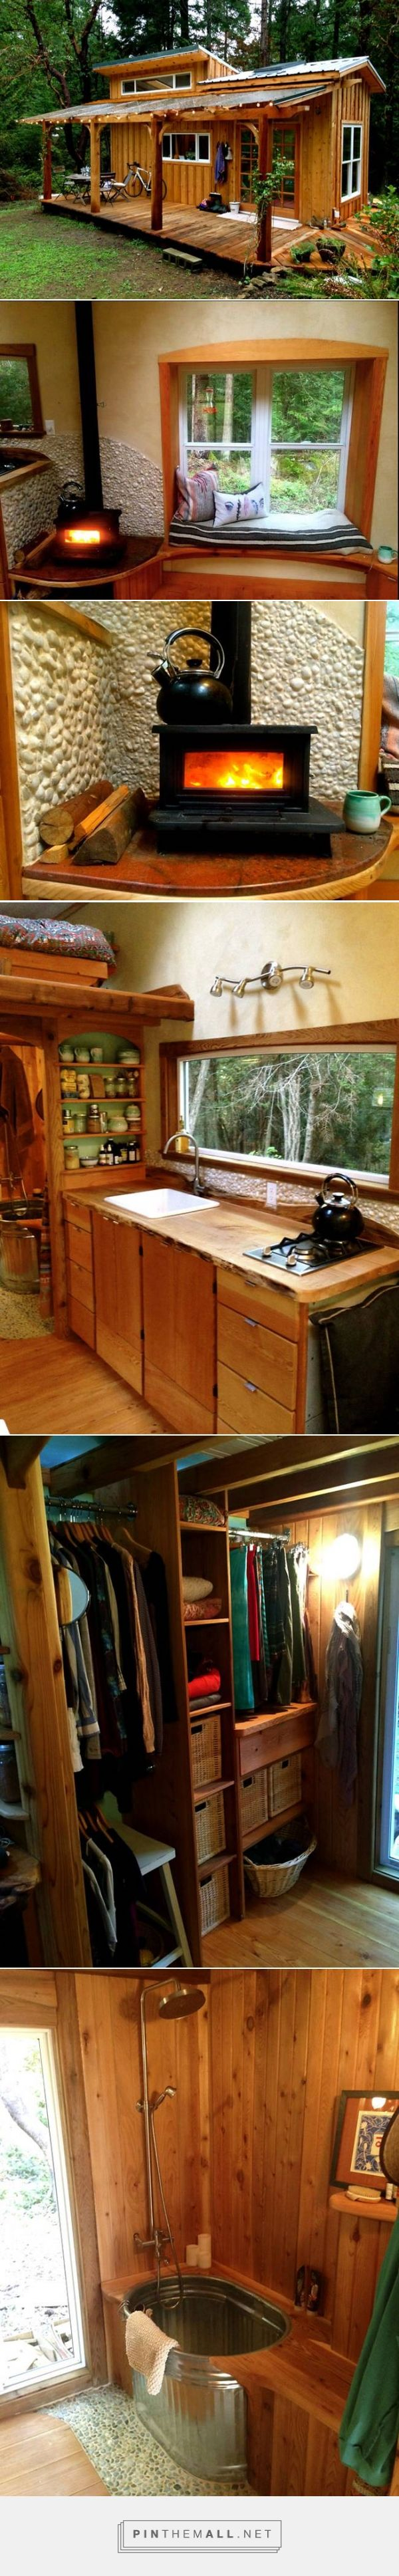 Yoga teacher's hand-built tiny house is a warm woodland haven : TreeHugger - created via https://pinthemall.net